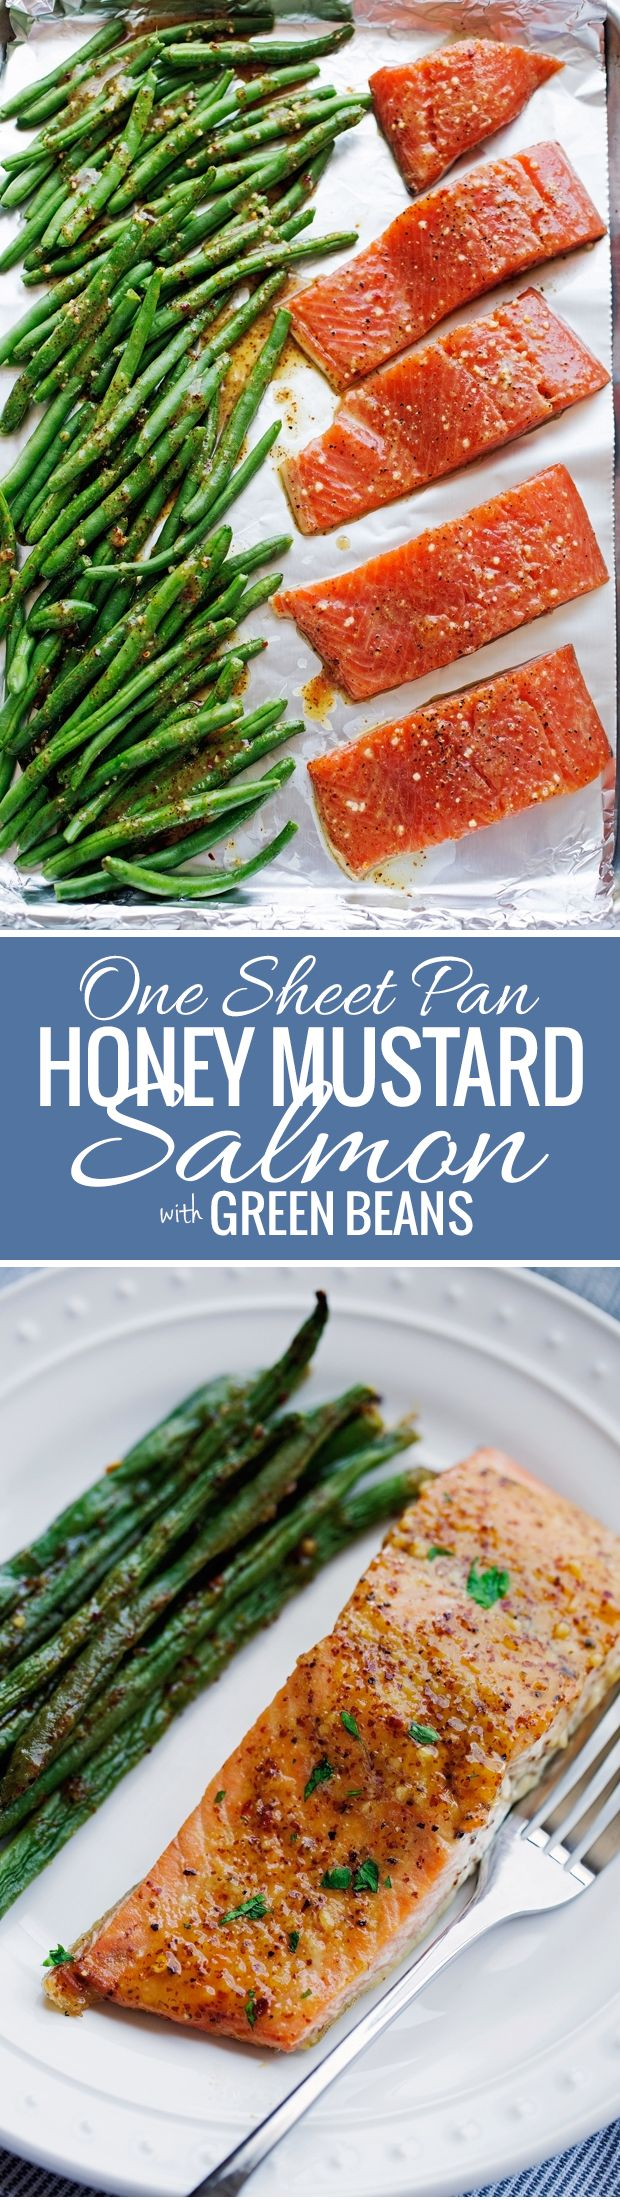 One Sheet Pan Honey Mustard Salmon with Green Beans   An easy weeknight dinner that  39 s all baked in one pan